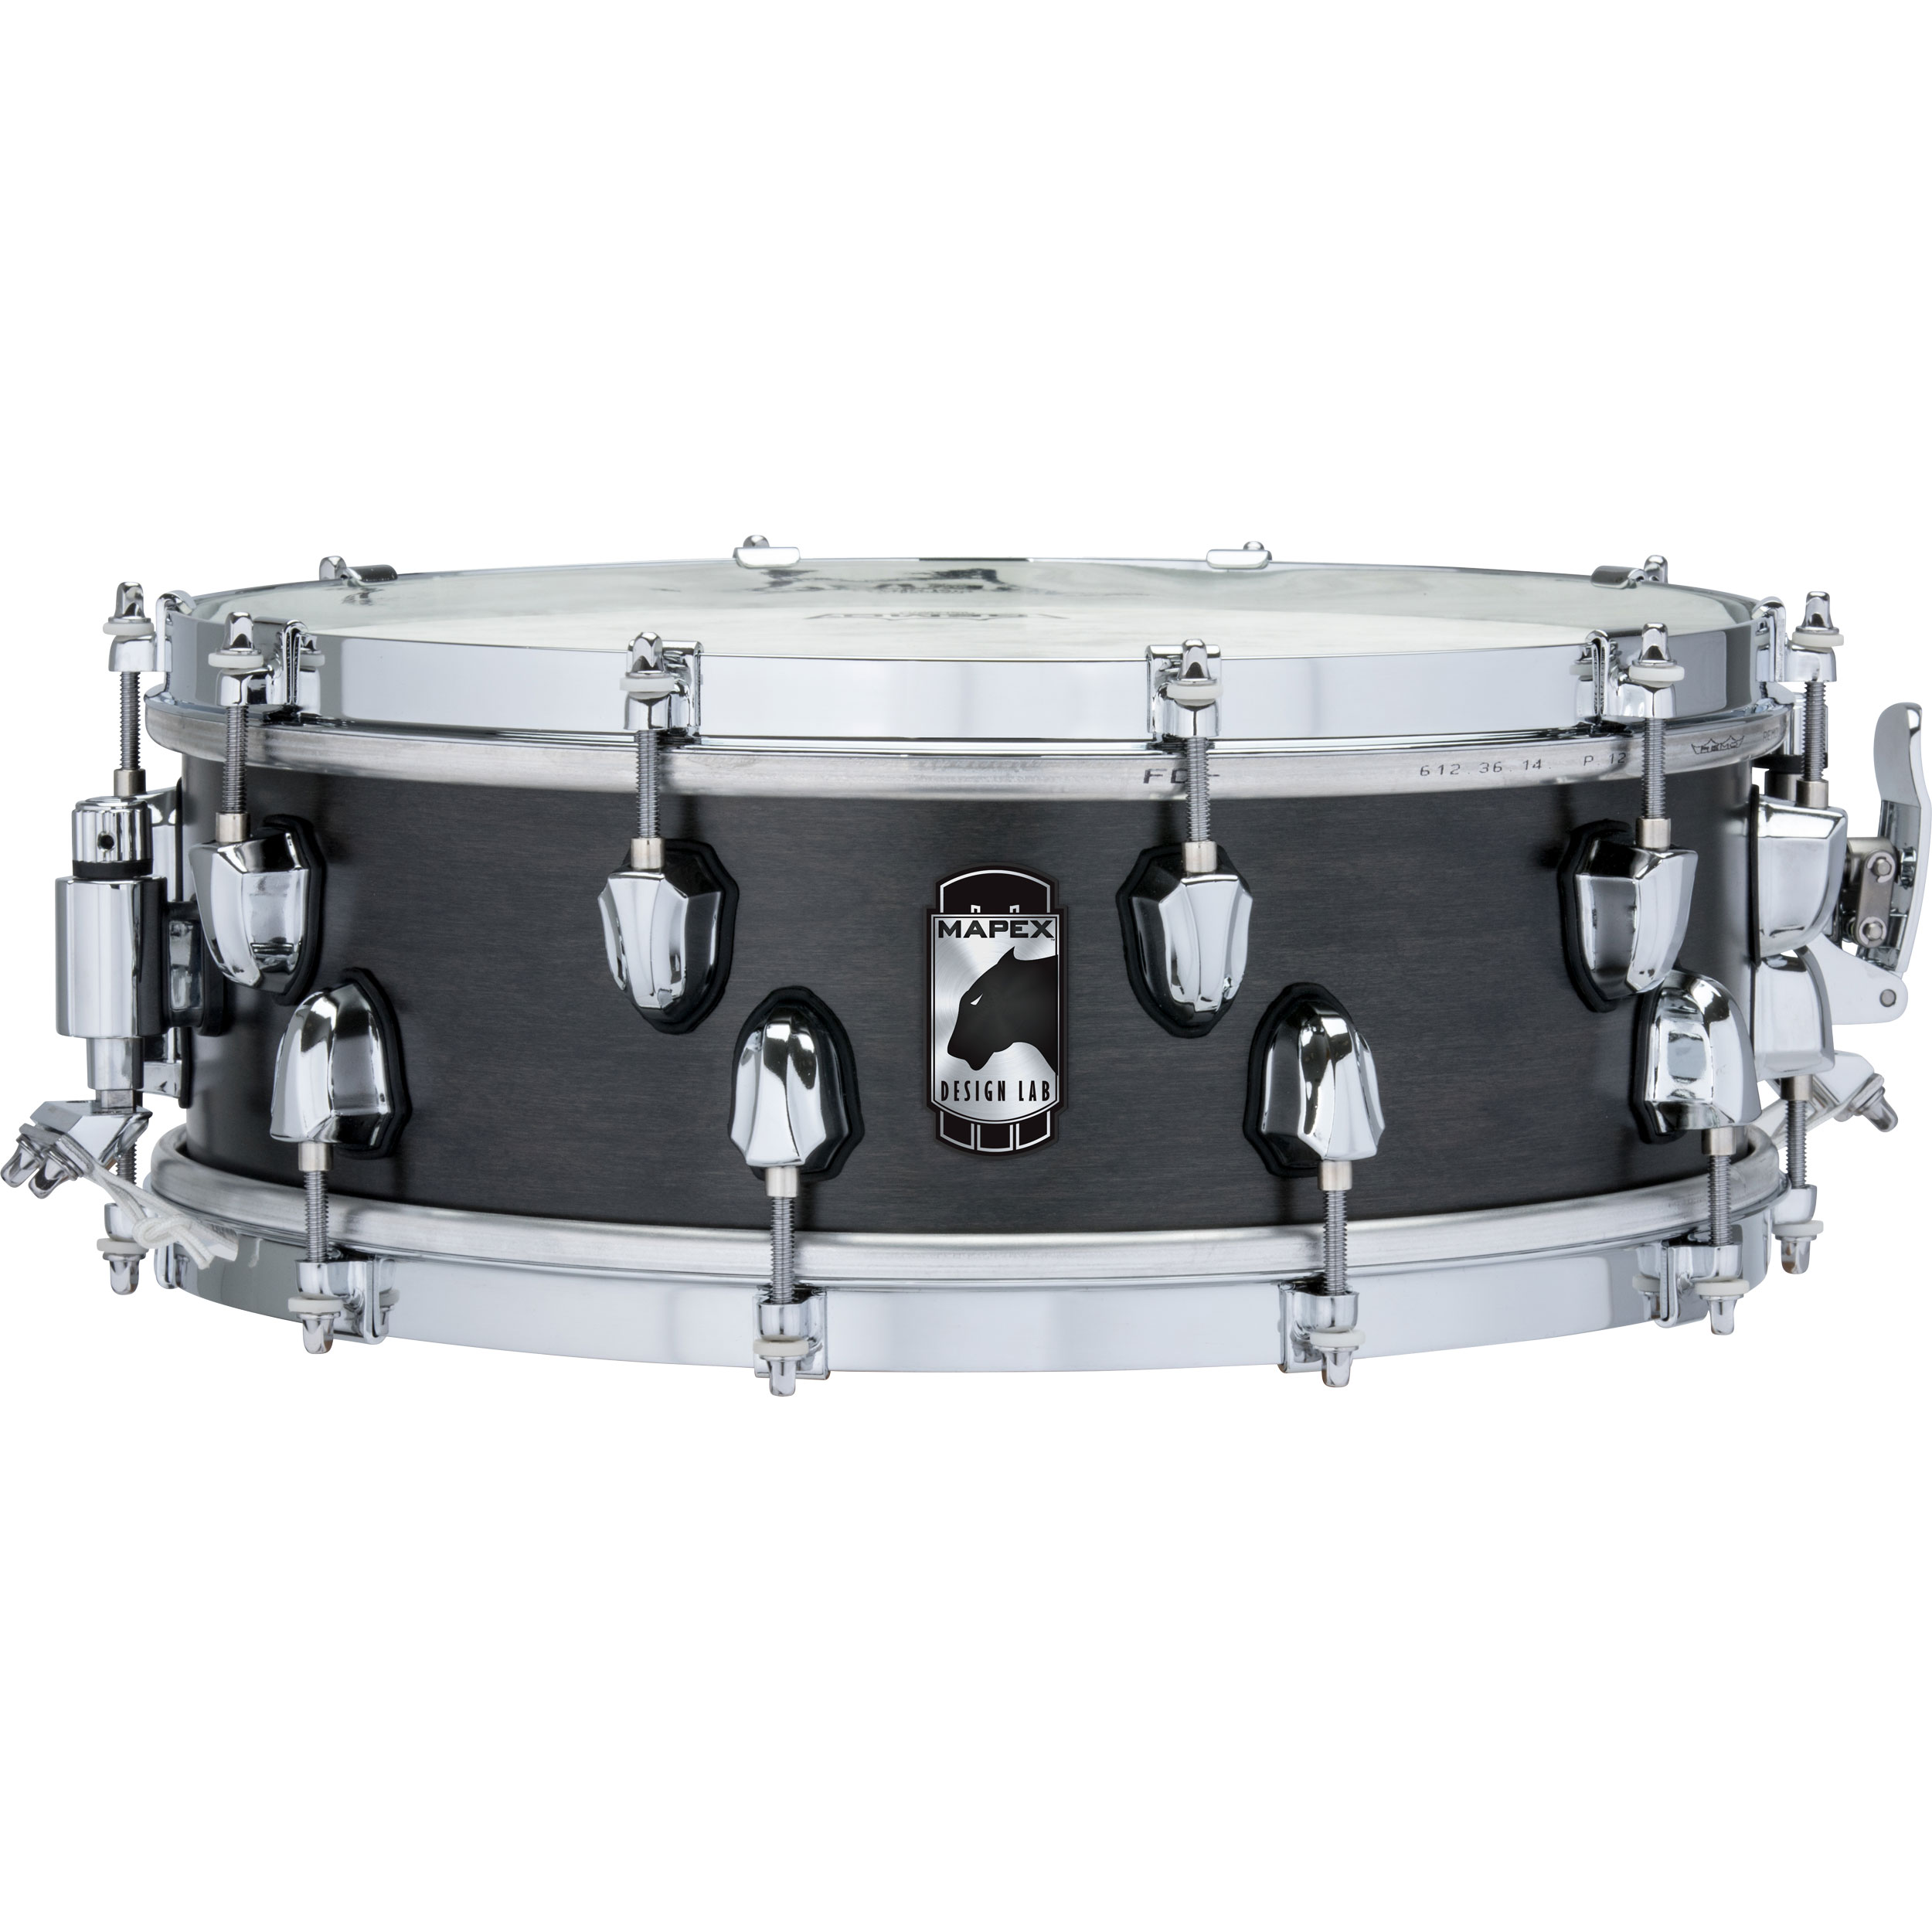 "Mapex 14"" x 5"" Black Panther Design Lab Equinox Maple Snare Drum"